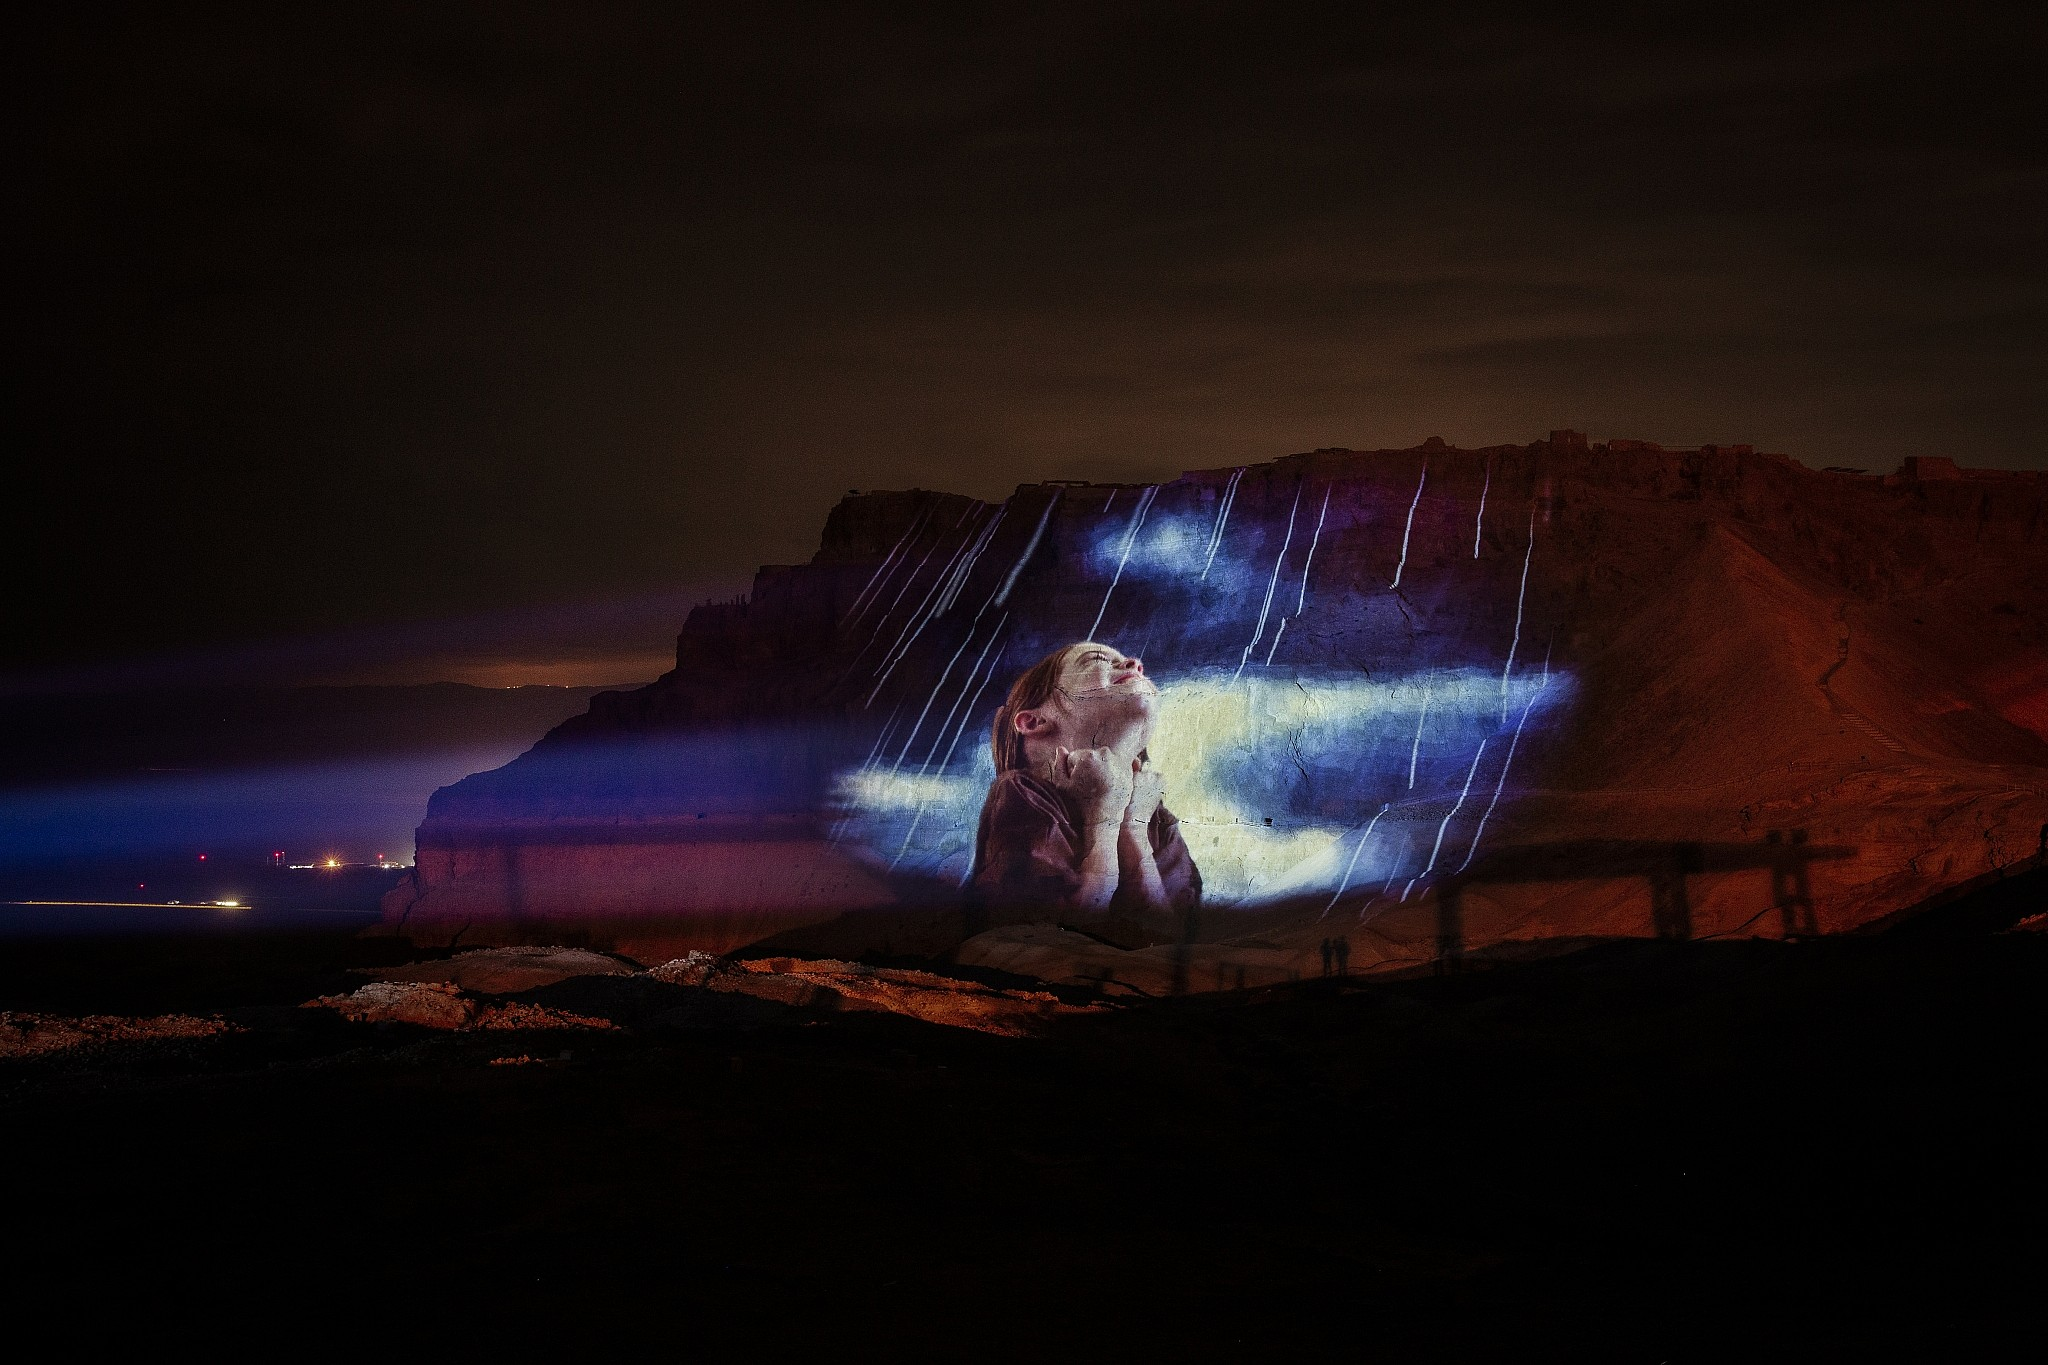 With new light show, 2,000-year-old Masada gets makeover fit for a